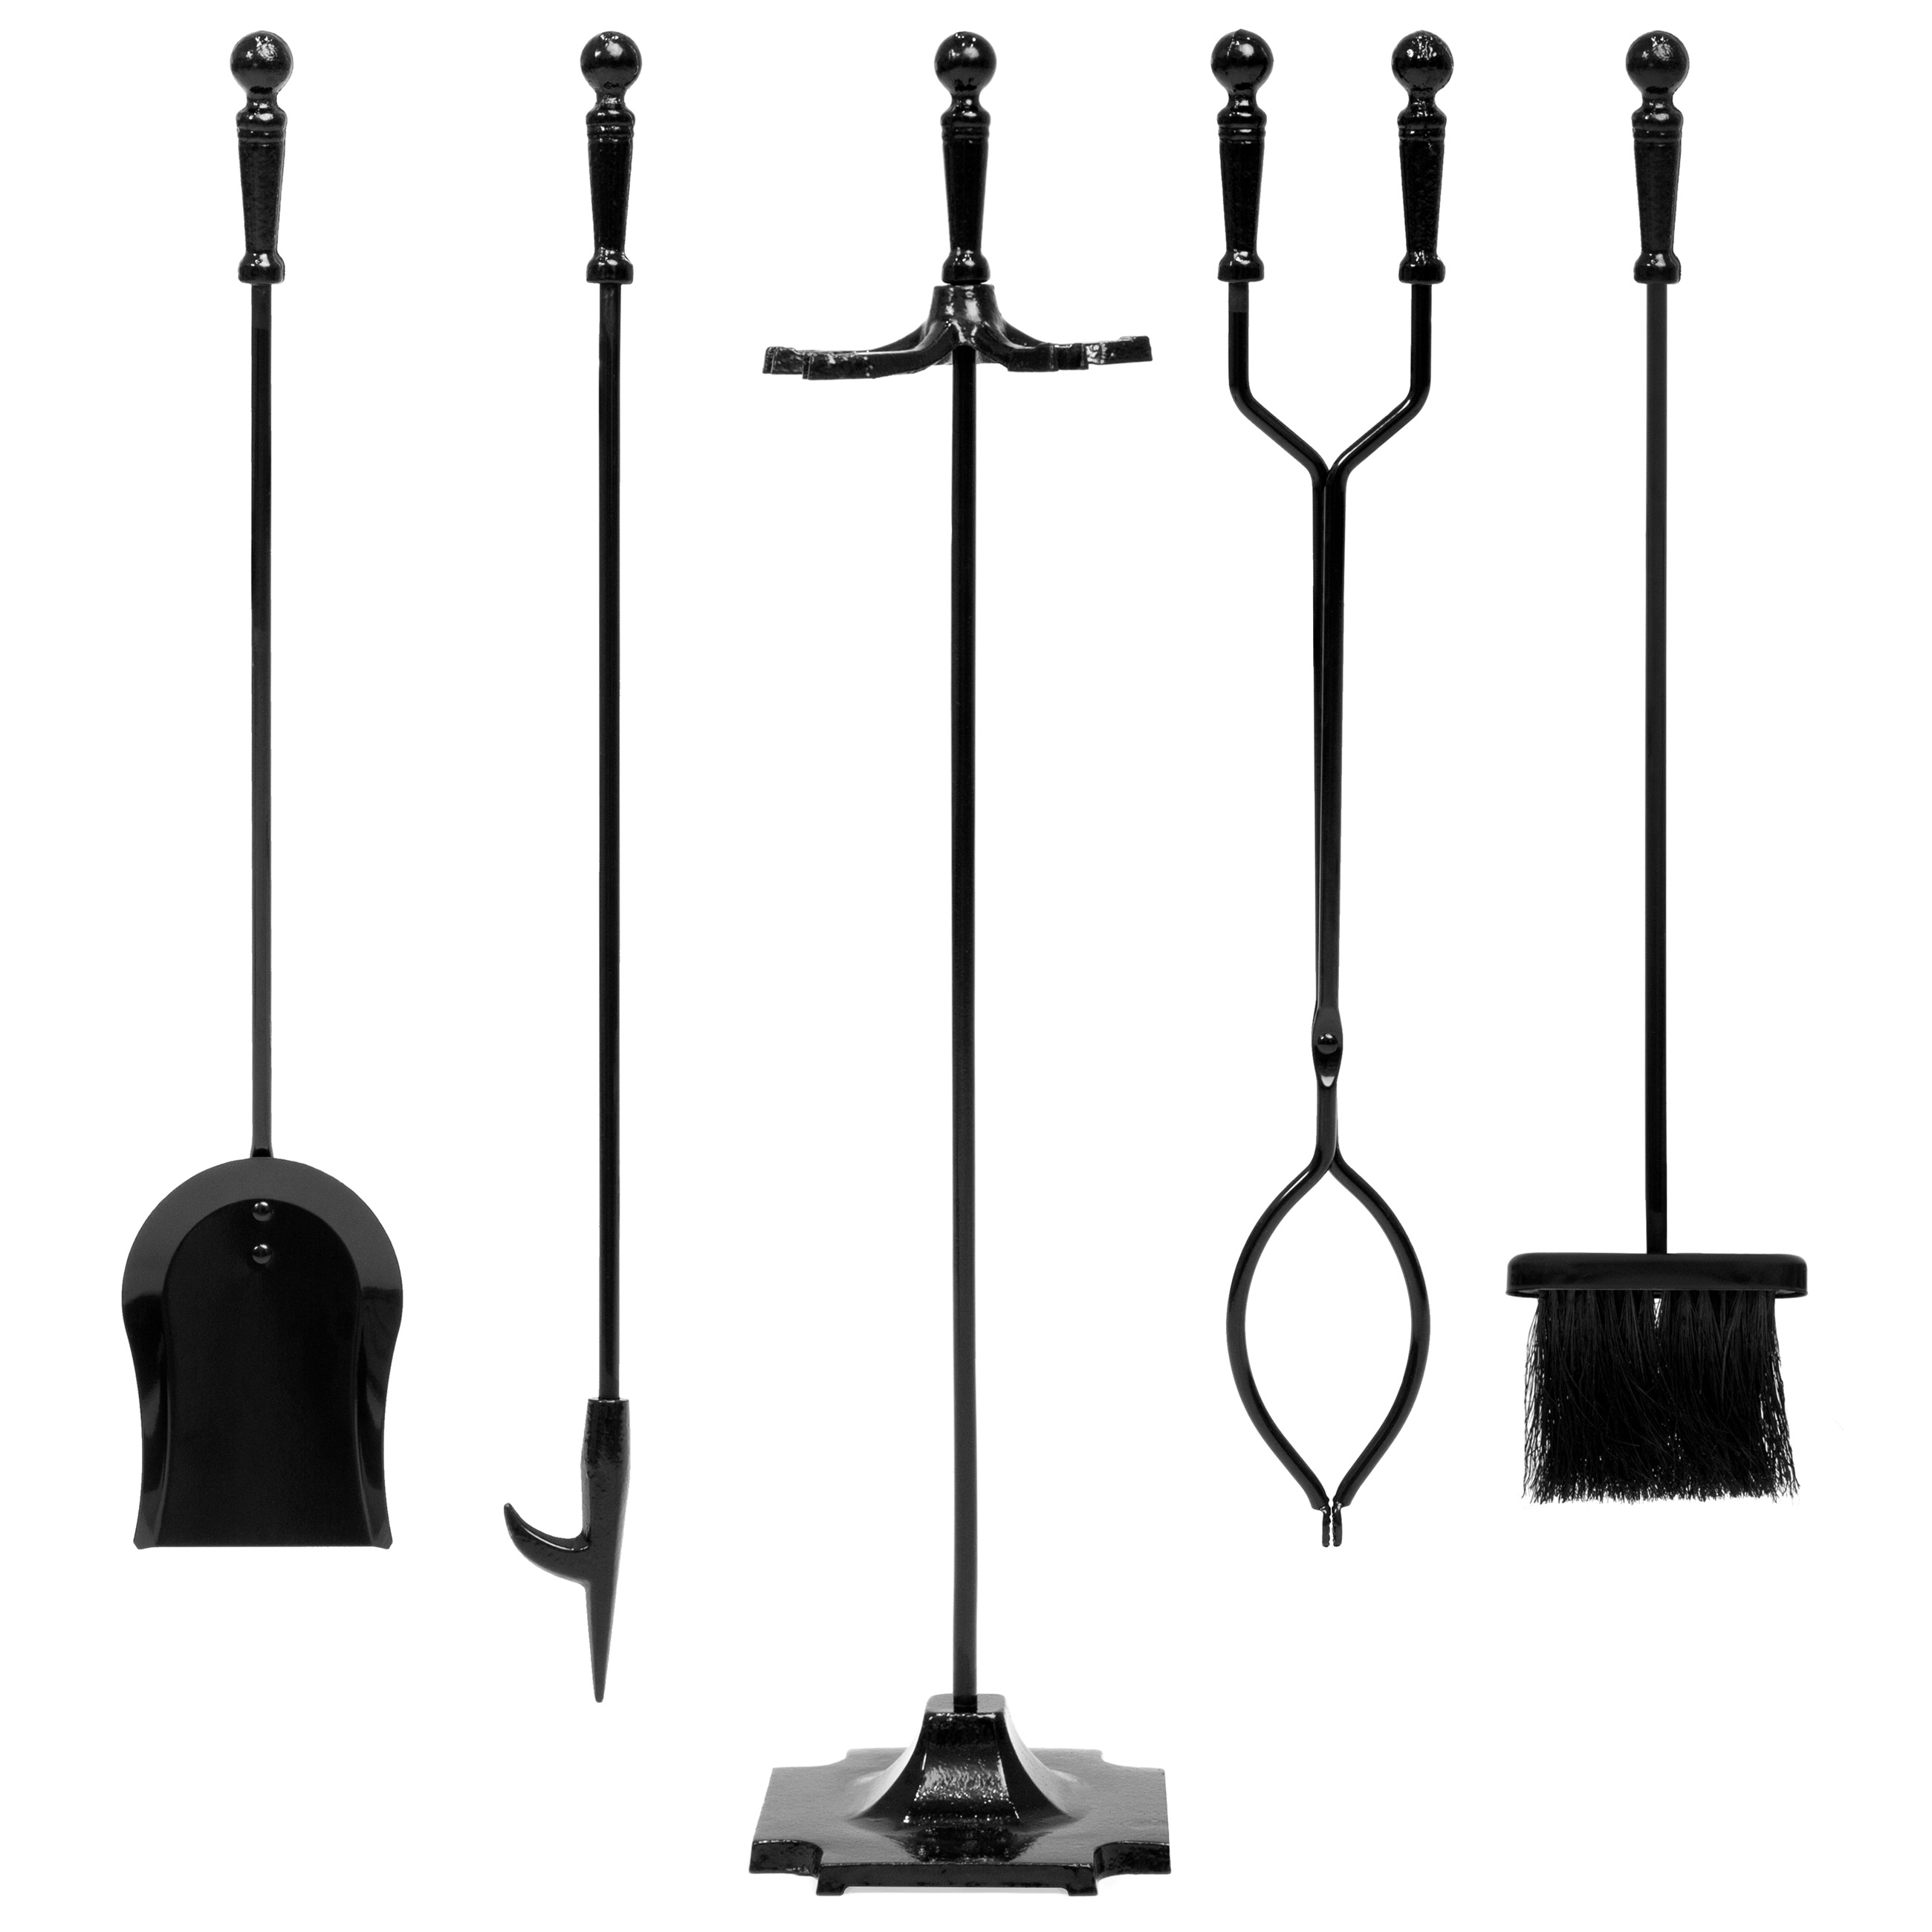 Best Choice Products 5-Piece Indoor Outdoor Fireplace Iron Tool Set w/ Tongs, Poker, Broom, Shovel, Stand - Black